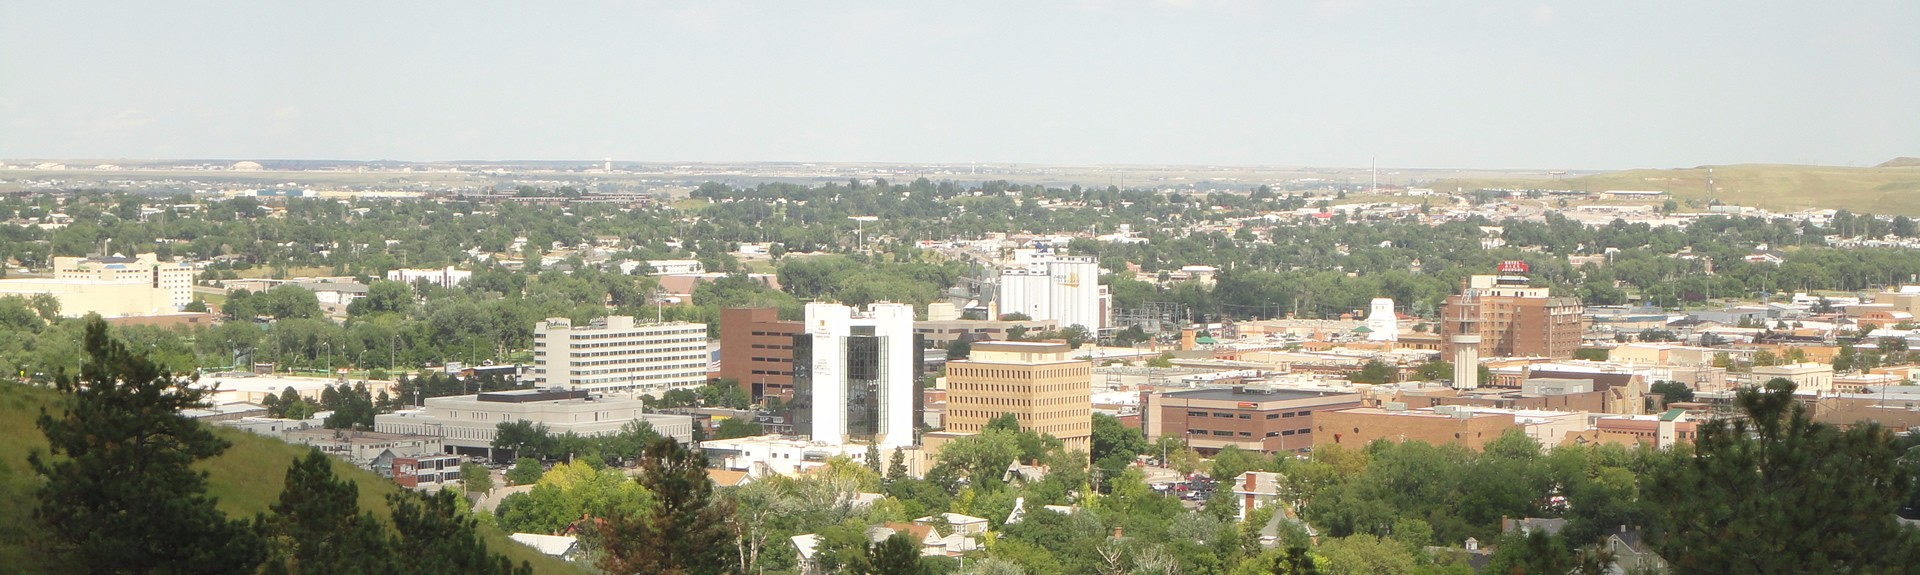 Rapid City view 1920×575